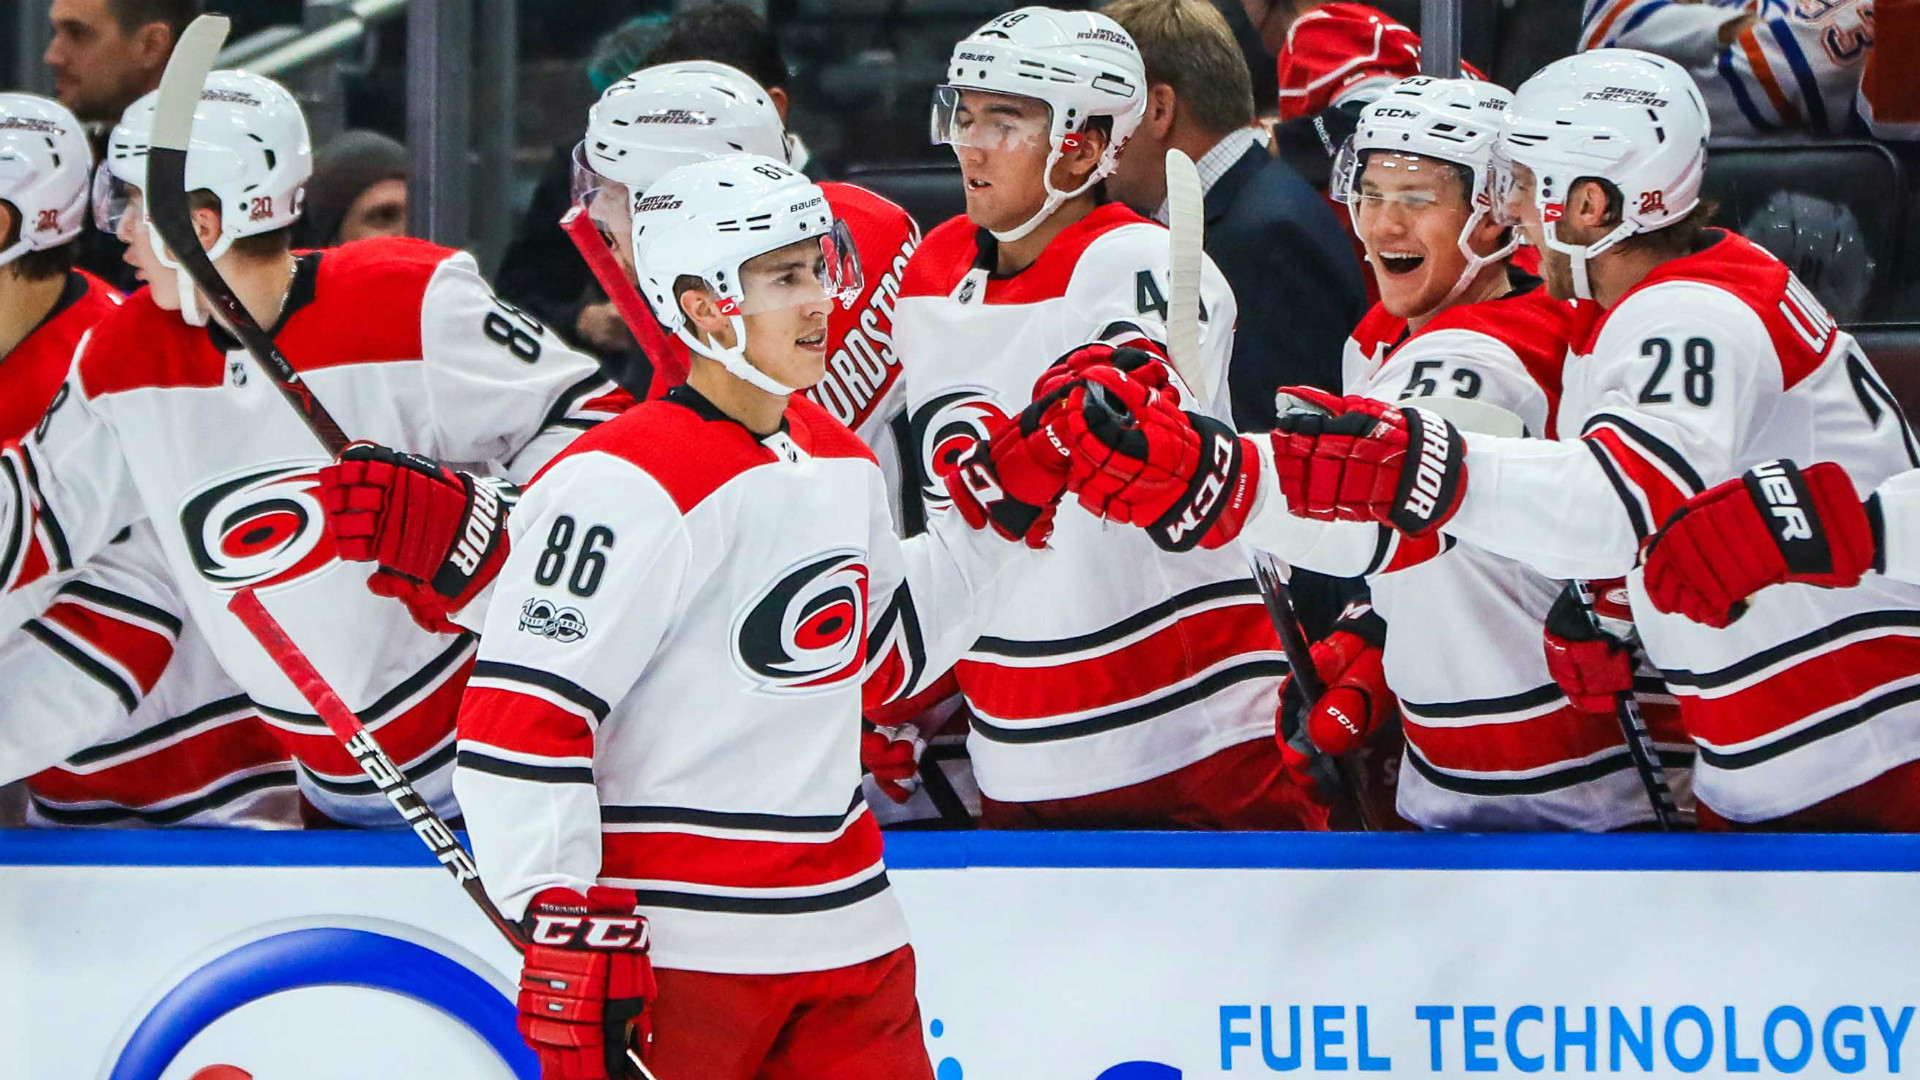 Teravainen scores natural hat trick to lead Hurricanes in win over Stars